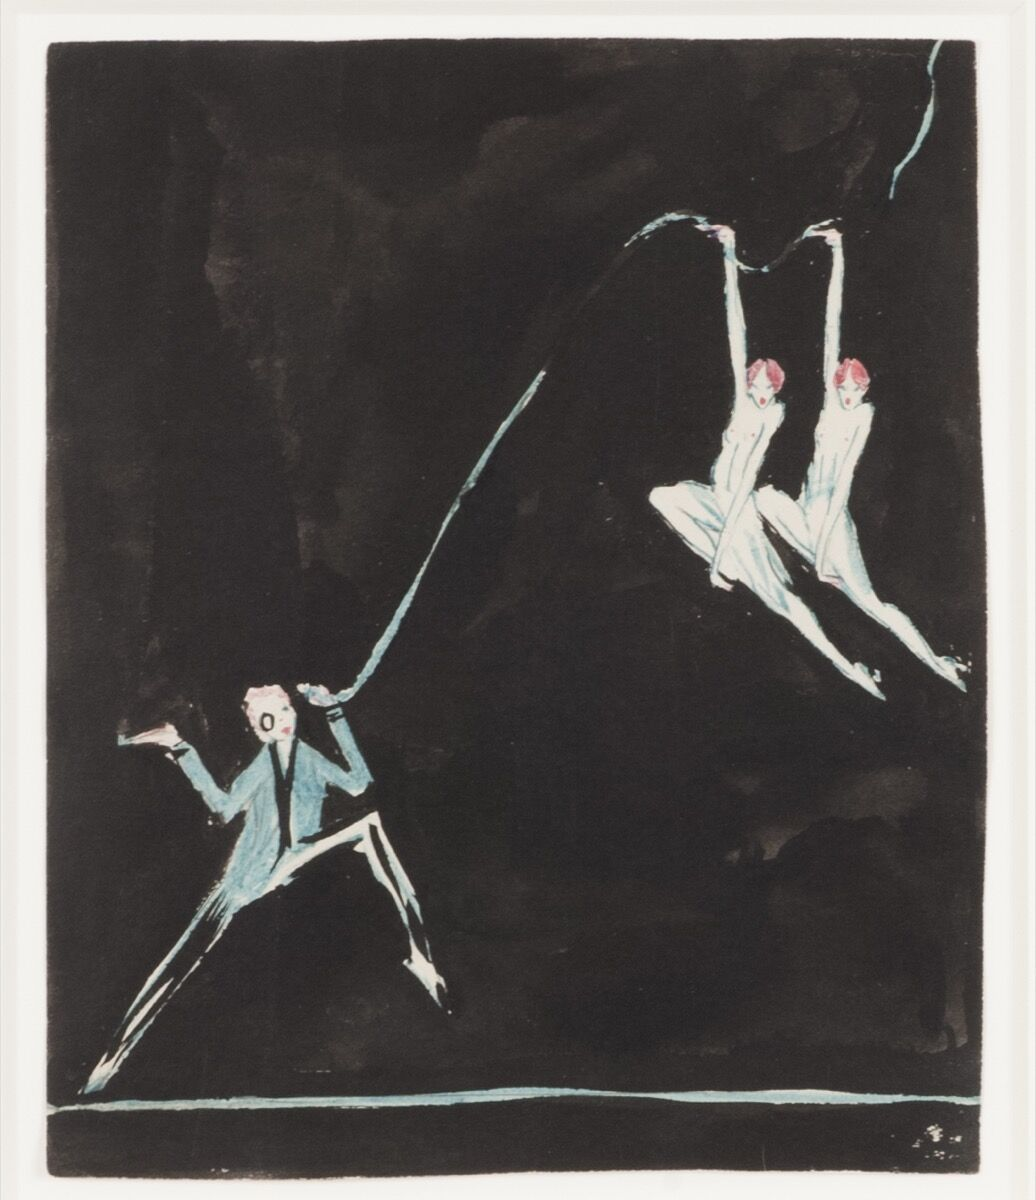 Clara Tice, Man with Monocle and Two Floating Dancers, ca. 1917. Courtesy of Francis Naumann Fine Art